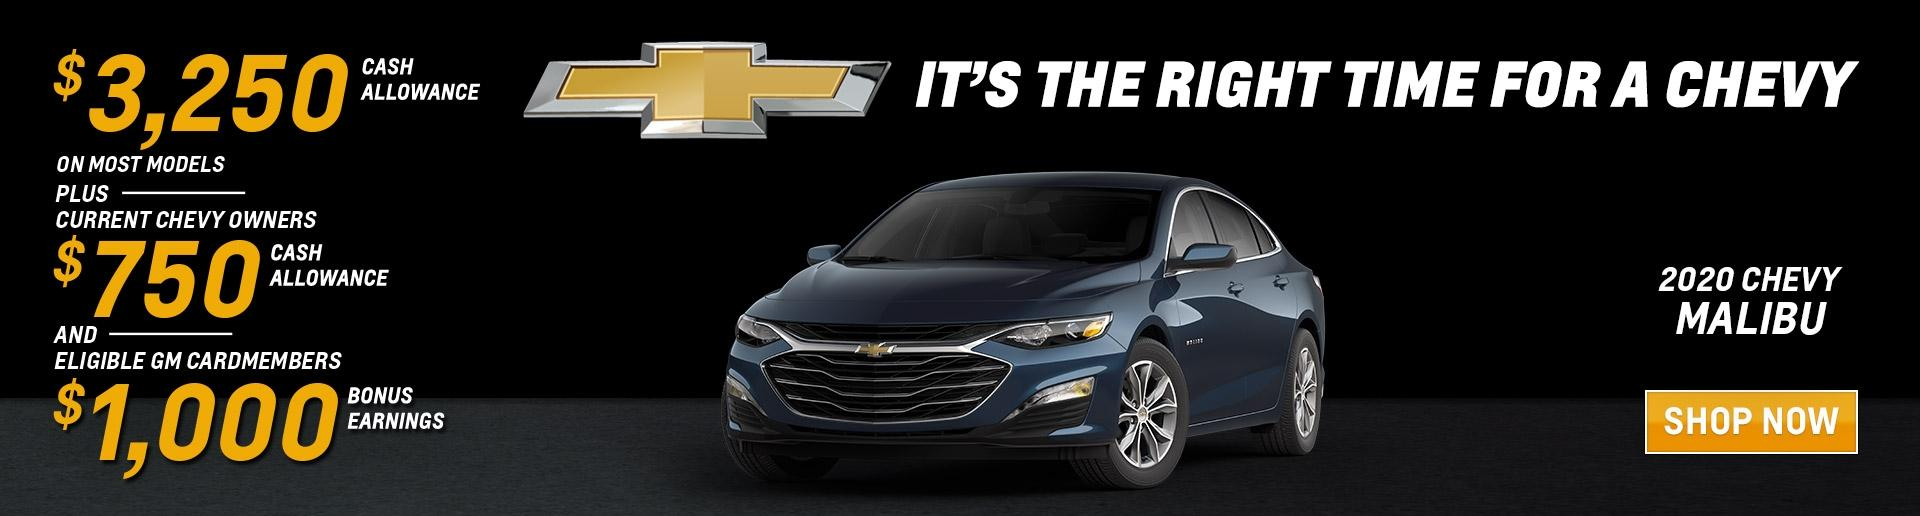 It's the Right Time for a Chevy Malibu | Chevy Drives Chicago | Chicagoland & NW Indiana Chevy Dealers